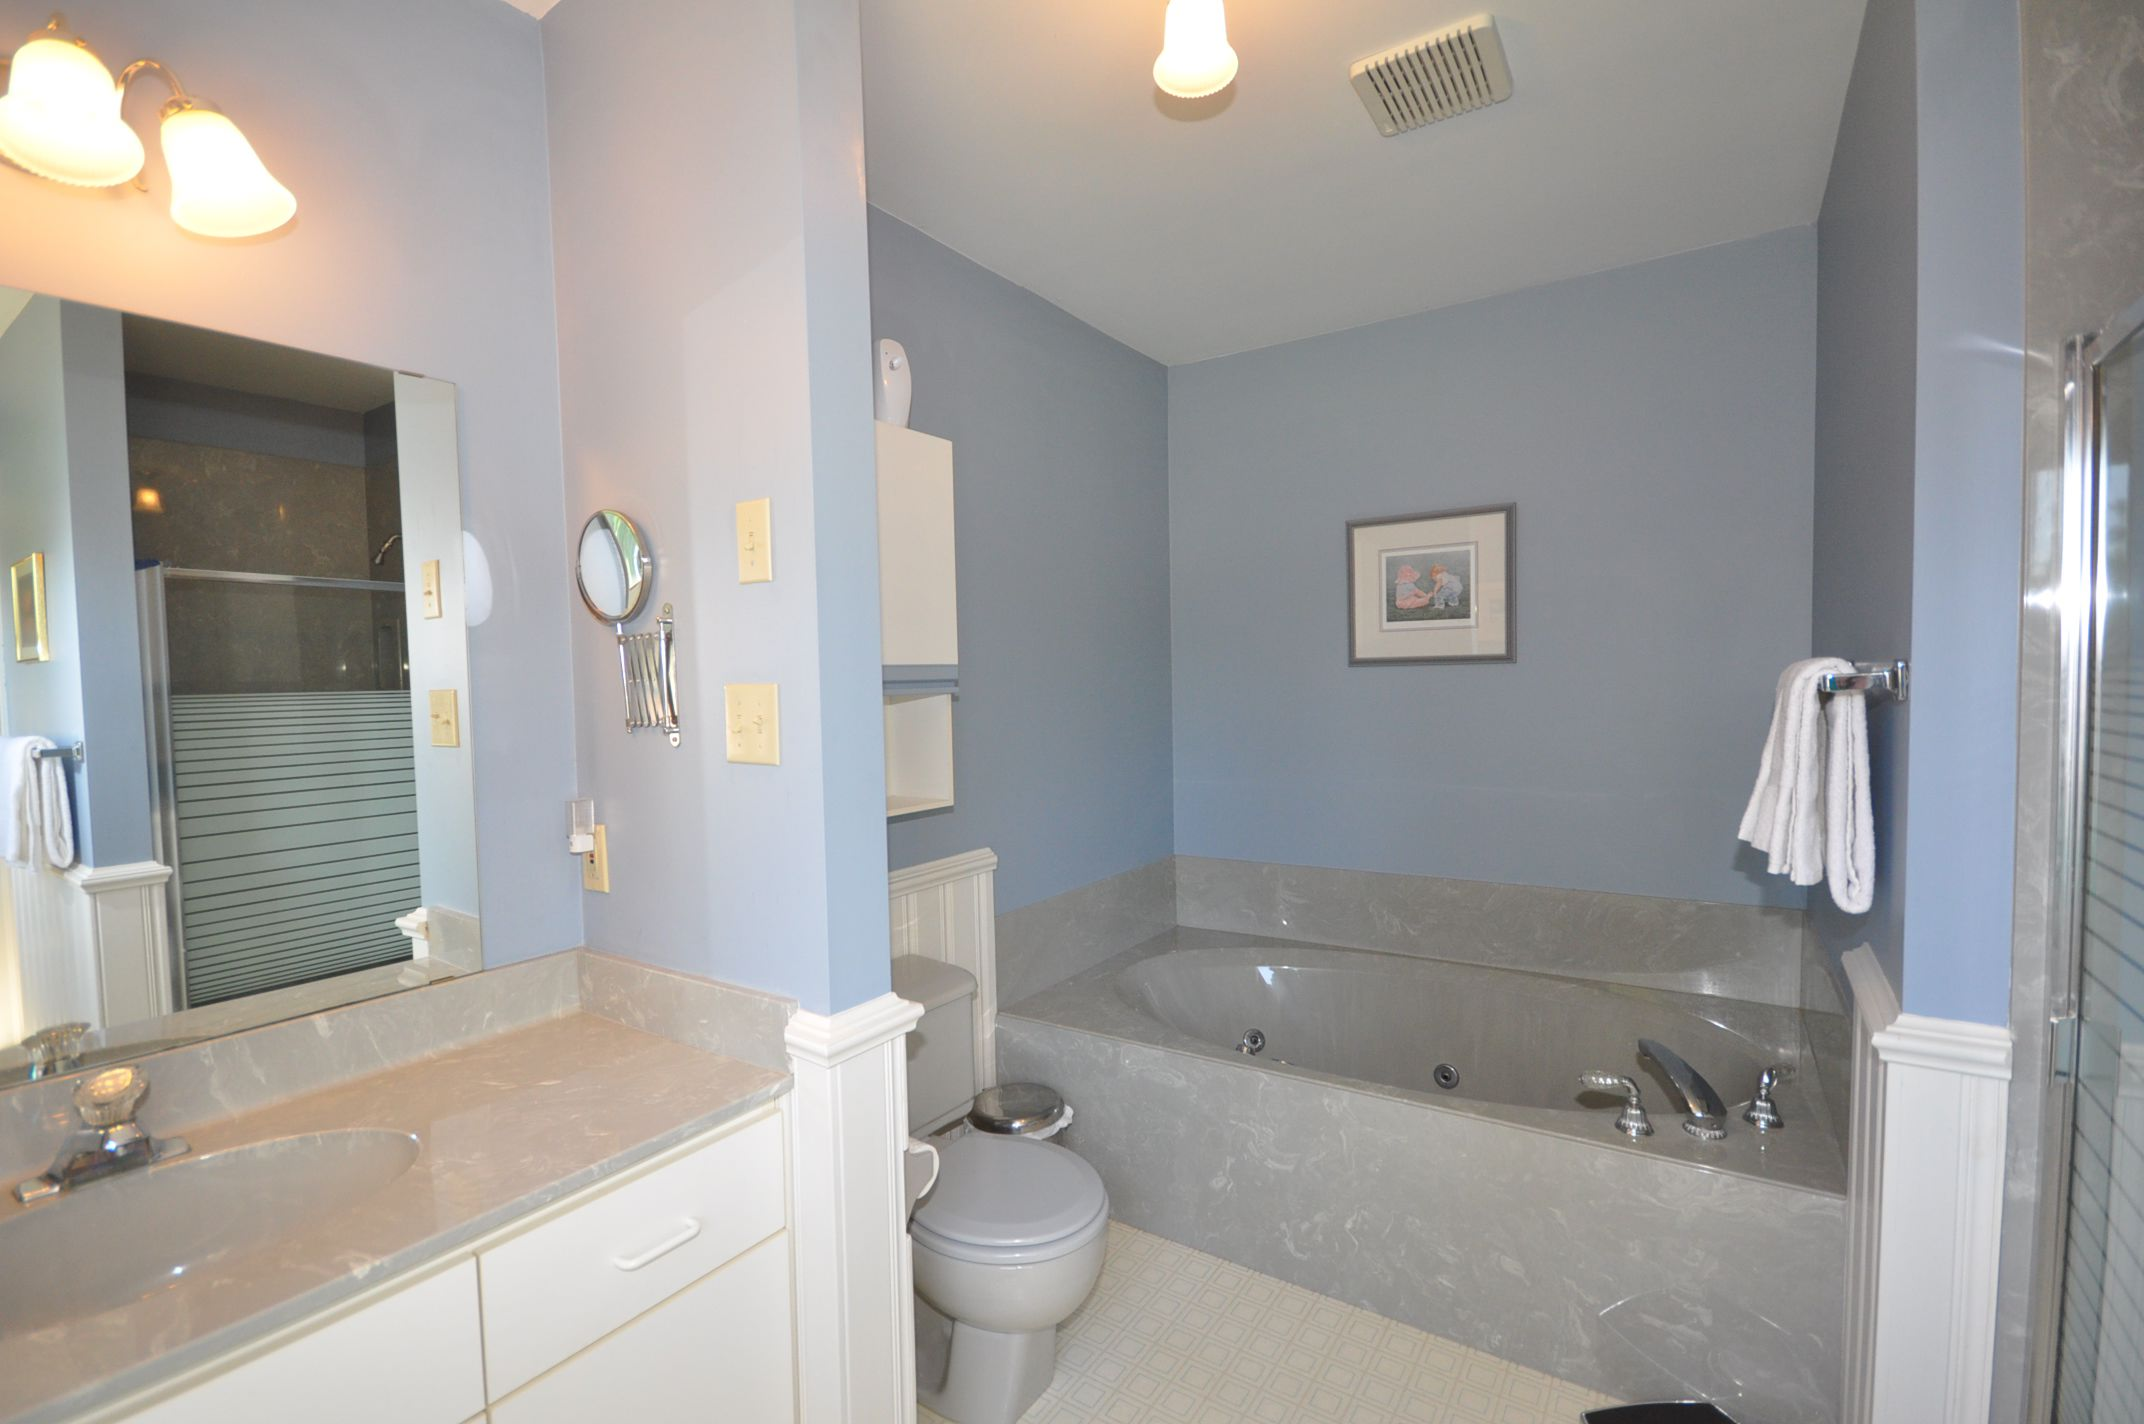 Relax in the whirlpool ensuite